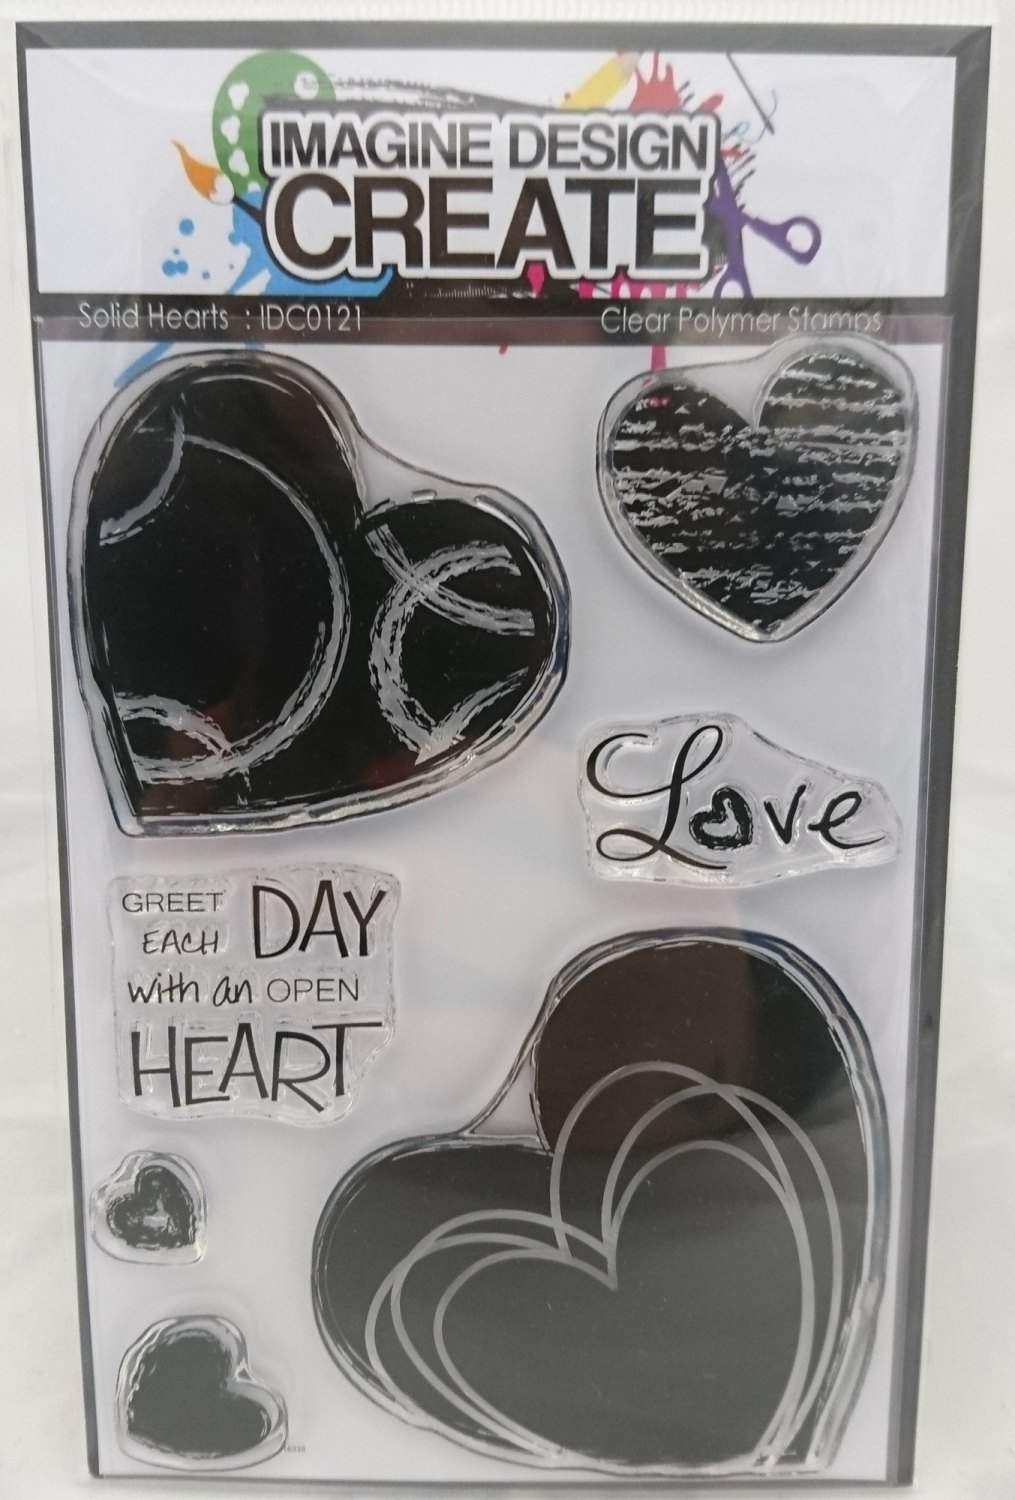 Solid Hearts : IDC0121 - A6 Stamp Set